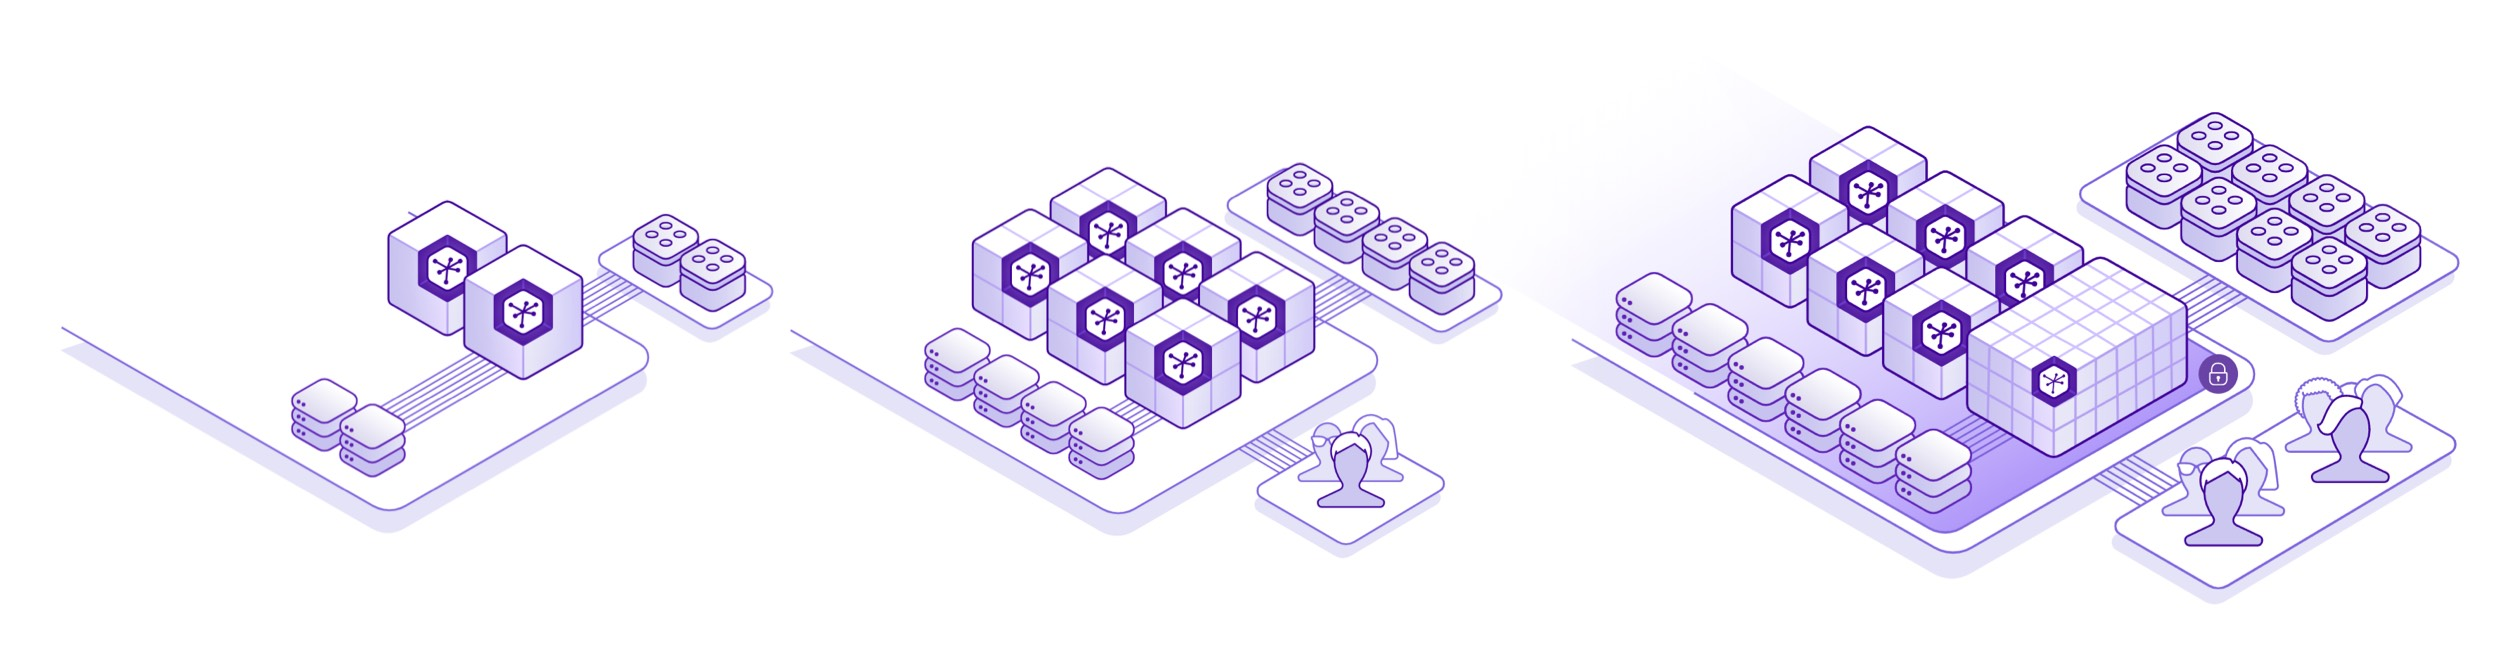 A visualisation of the options for growth with Heroku, featuring databases, apps, and teams